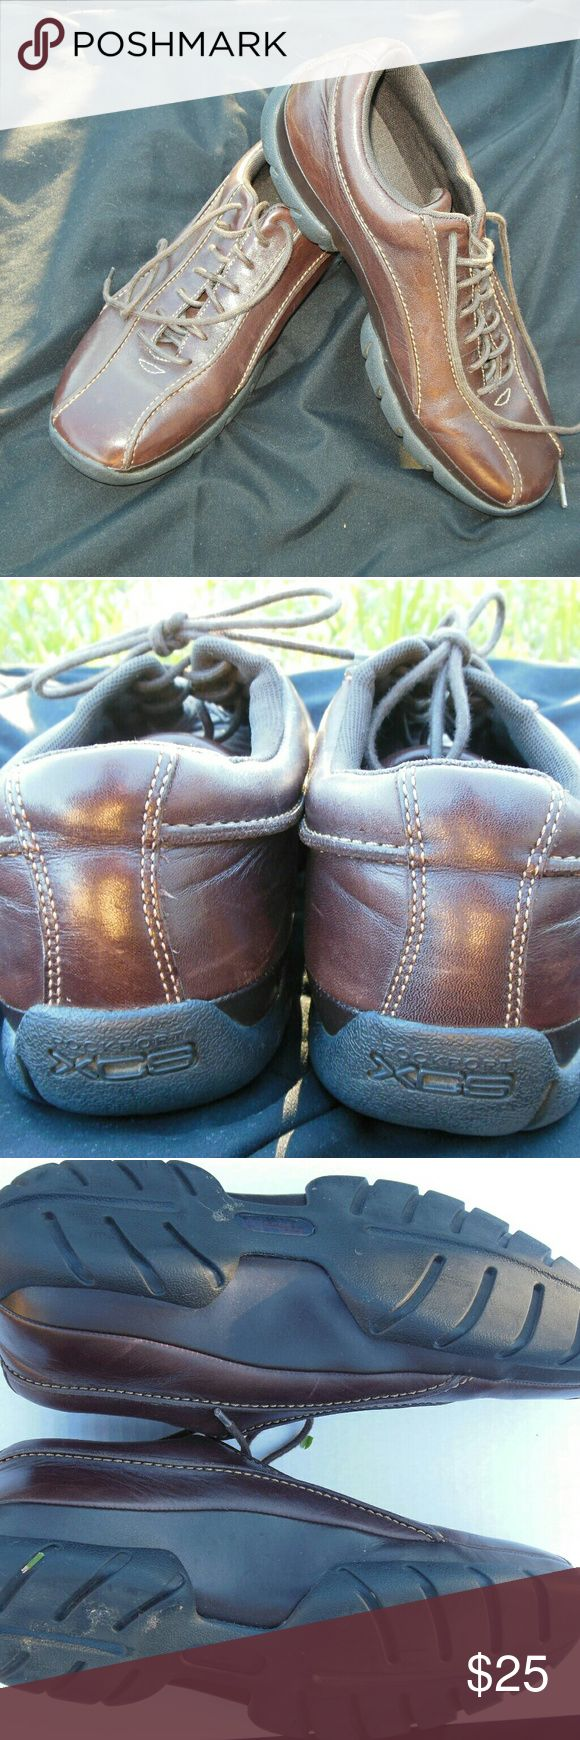 Rockport XCS Men's Casual shoe Brown leather casual shoes. Great pair of shoes for the office or even a casual weekend outfit. Shoes some signs of wear with ceasing around the ankle otherwise they are in great condition. Rockport Shoes Sneakers